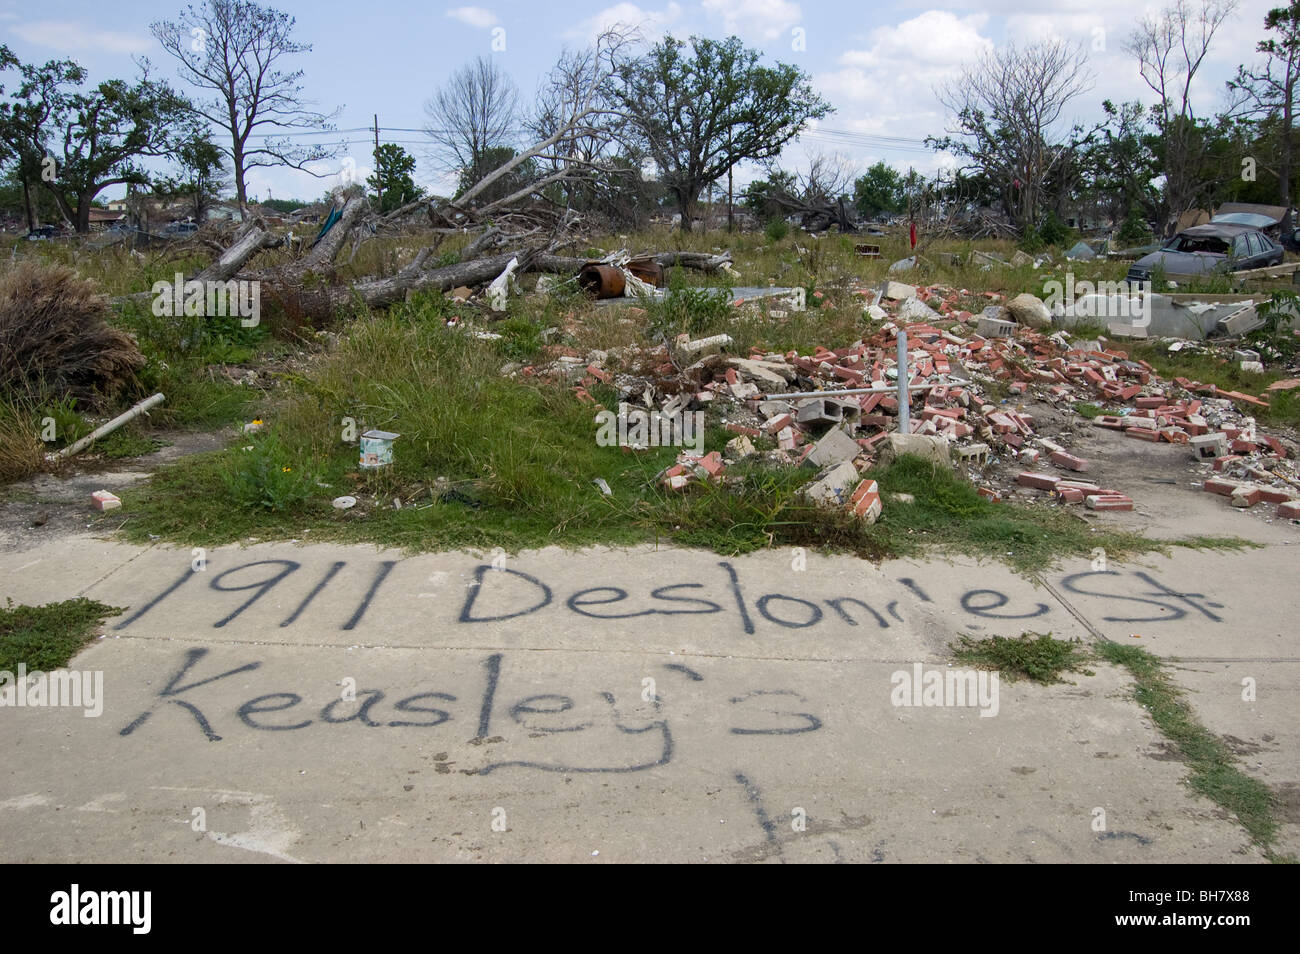 The Keasley's must have lived here. 9 months after Hurricane Katrina, Lower Ninth Ward, New Orleans. - Stock Image